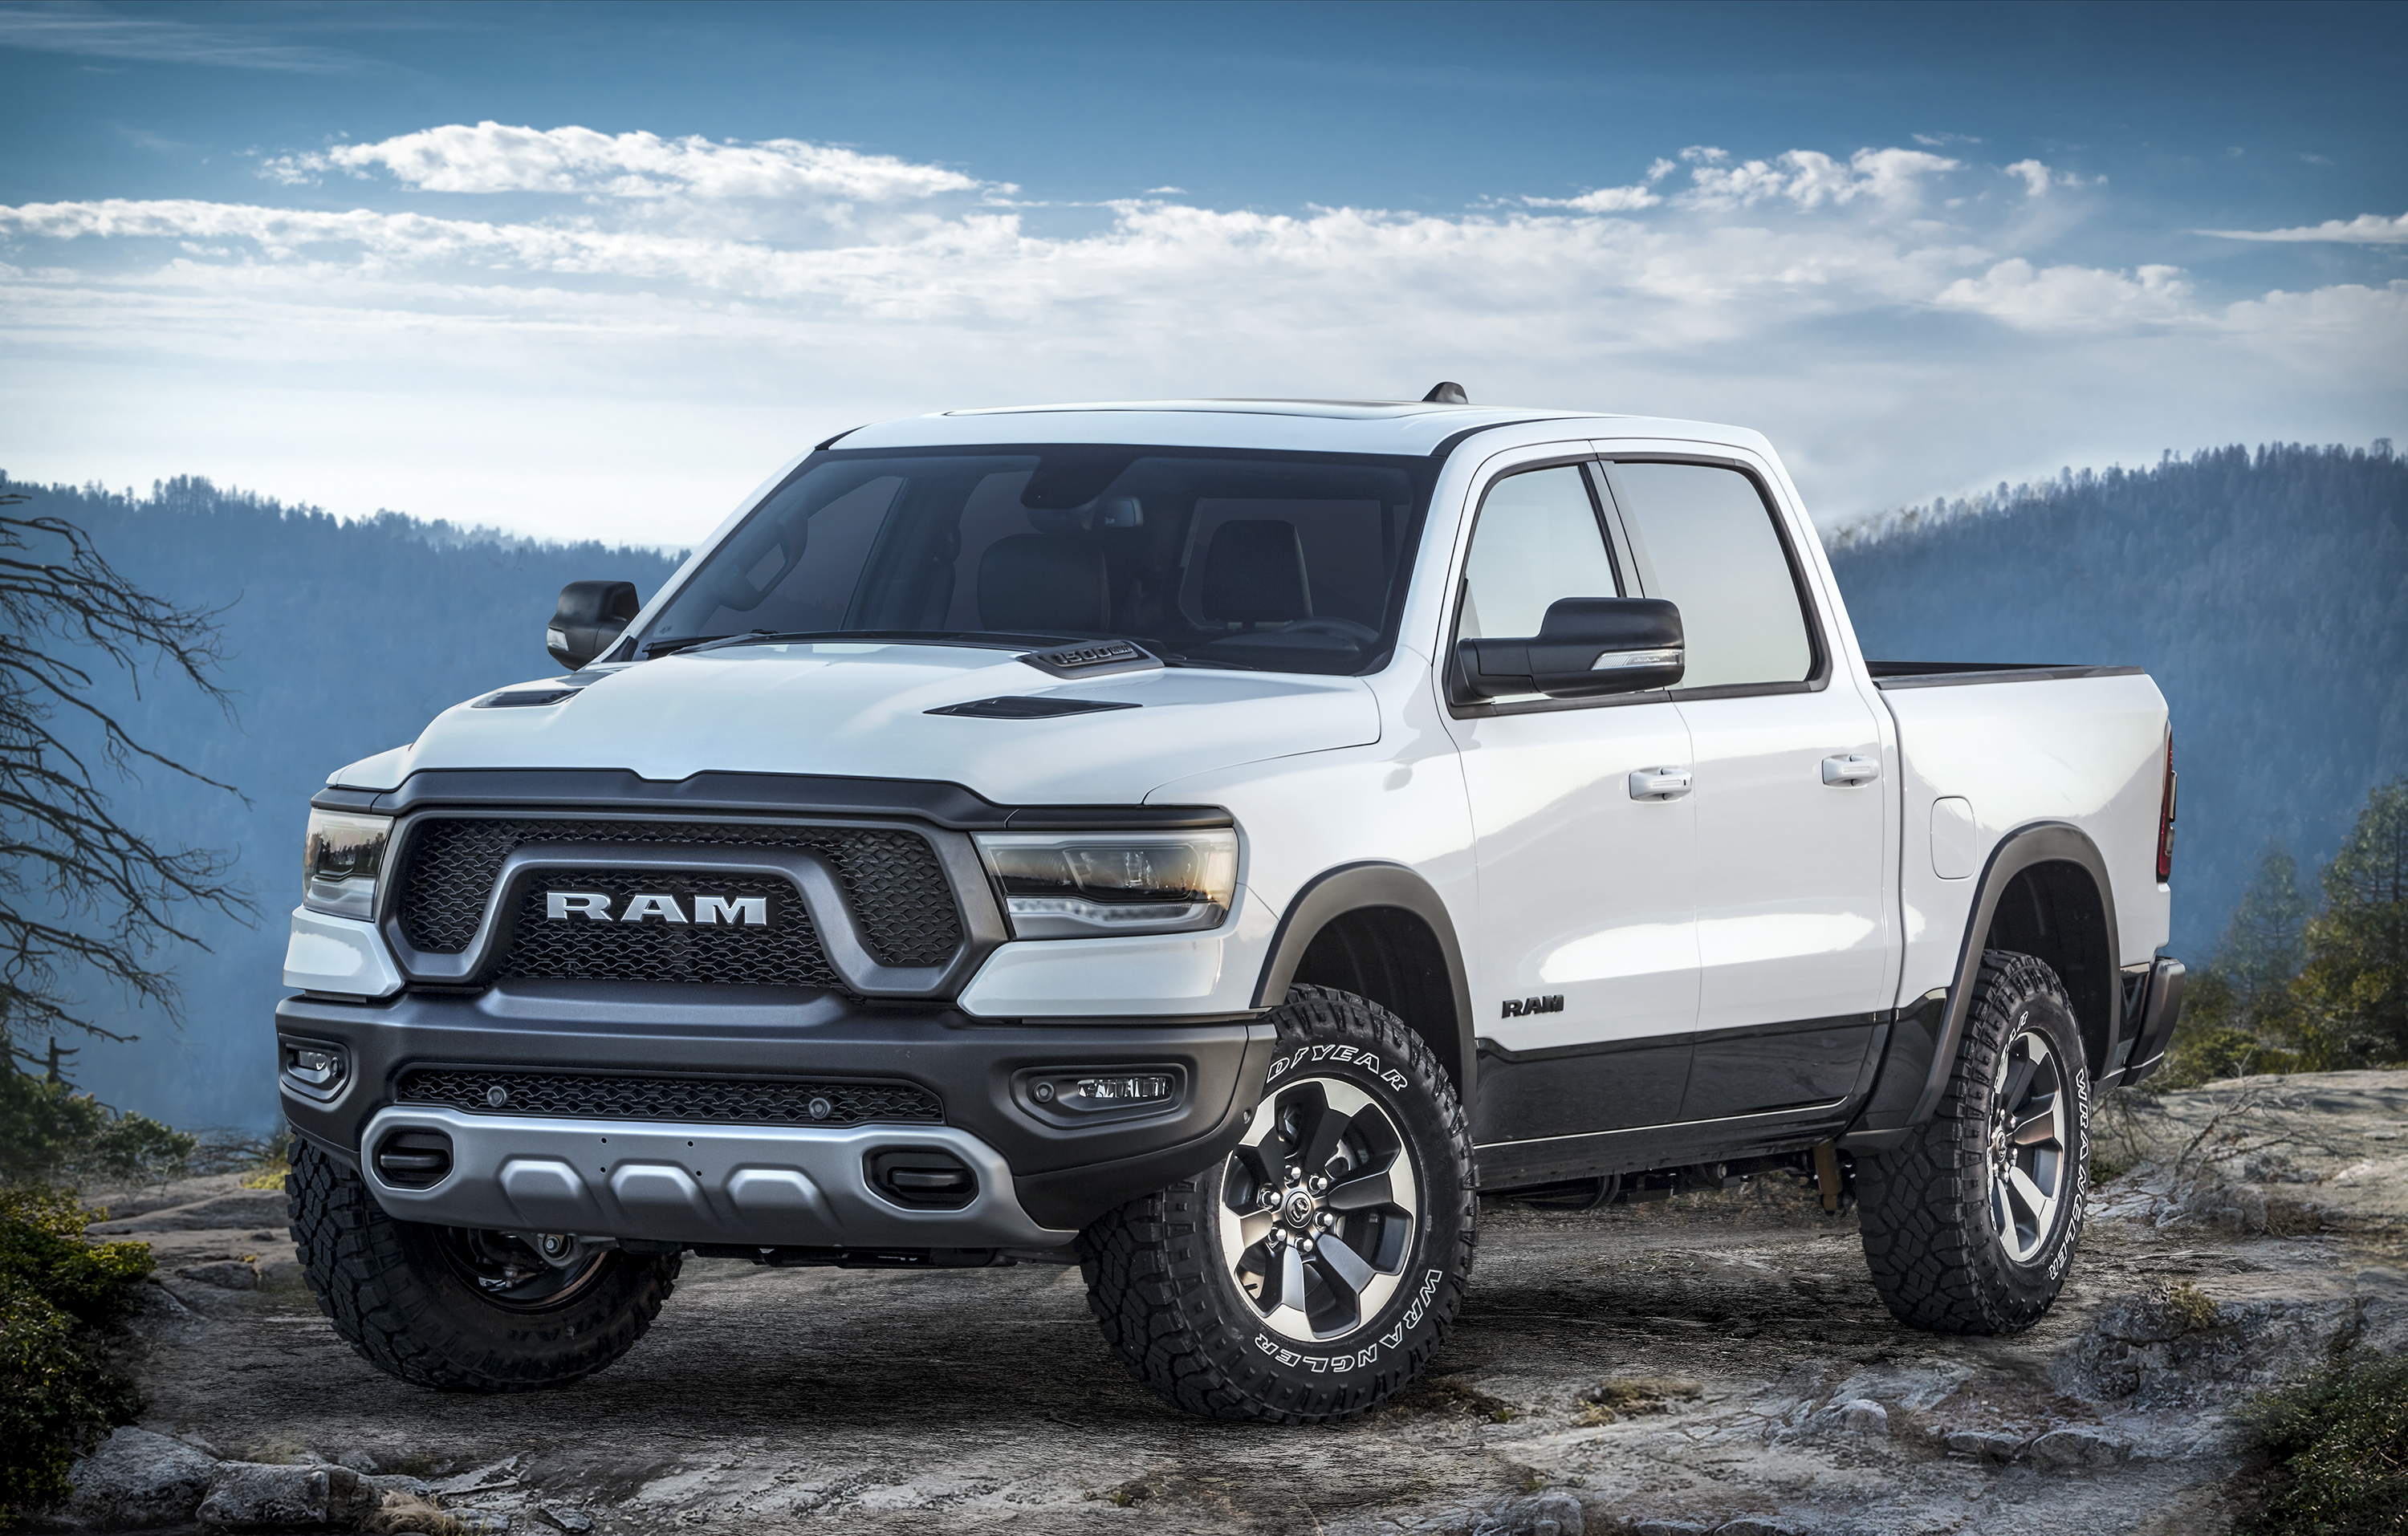 Chrysler Capital Finance >> You'll want to see the interior of the new 2019 Ram 1500 Rebel 12 - Chrysler Capital